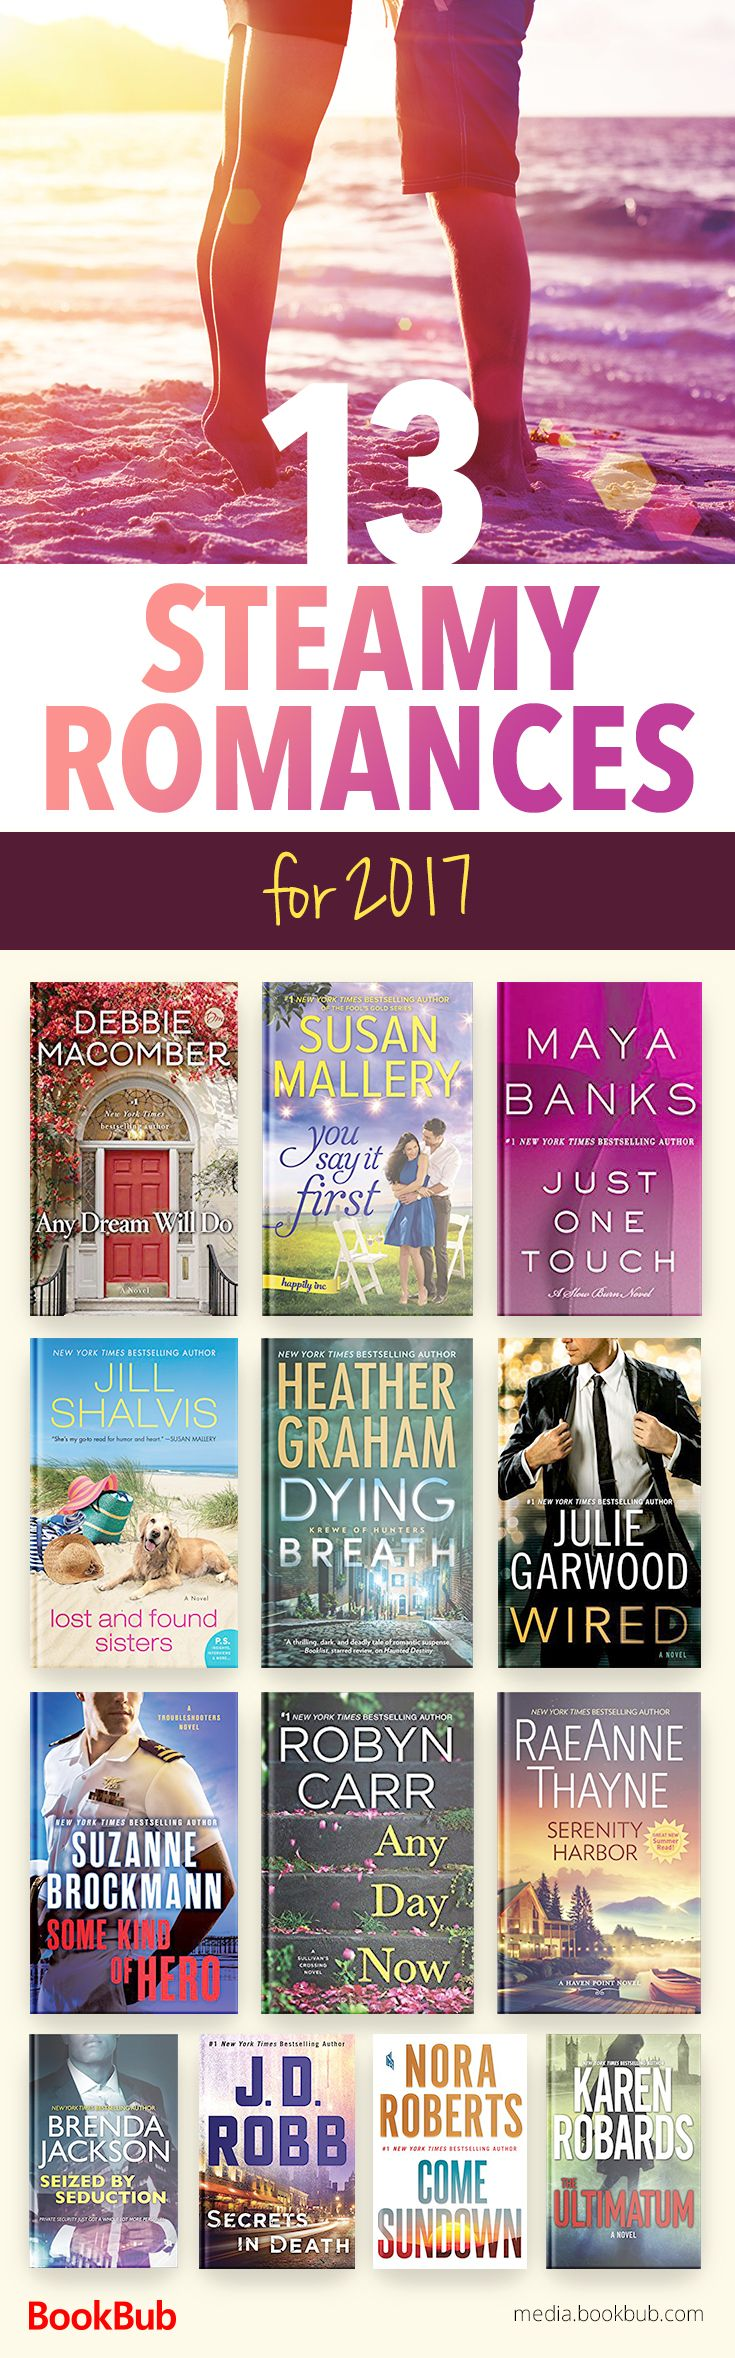 13 steamy romances worth reading. These hot romance books would make great additions to your 2017 reading list!